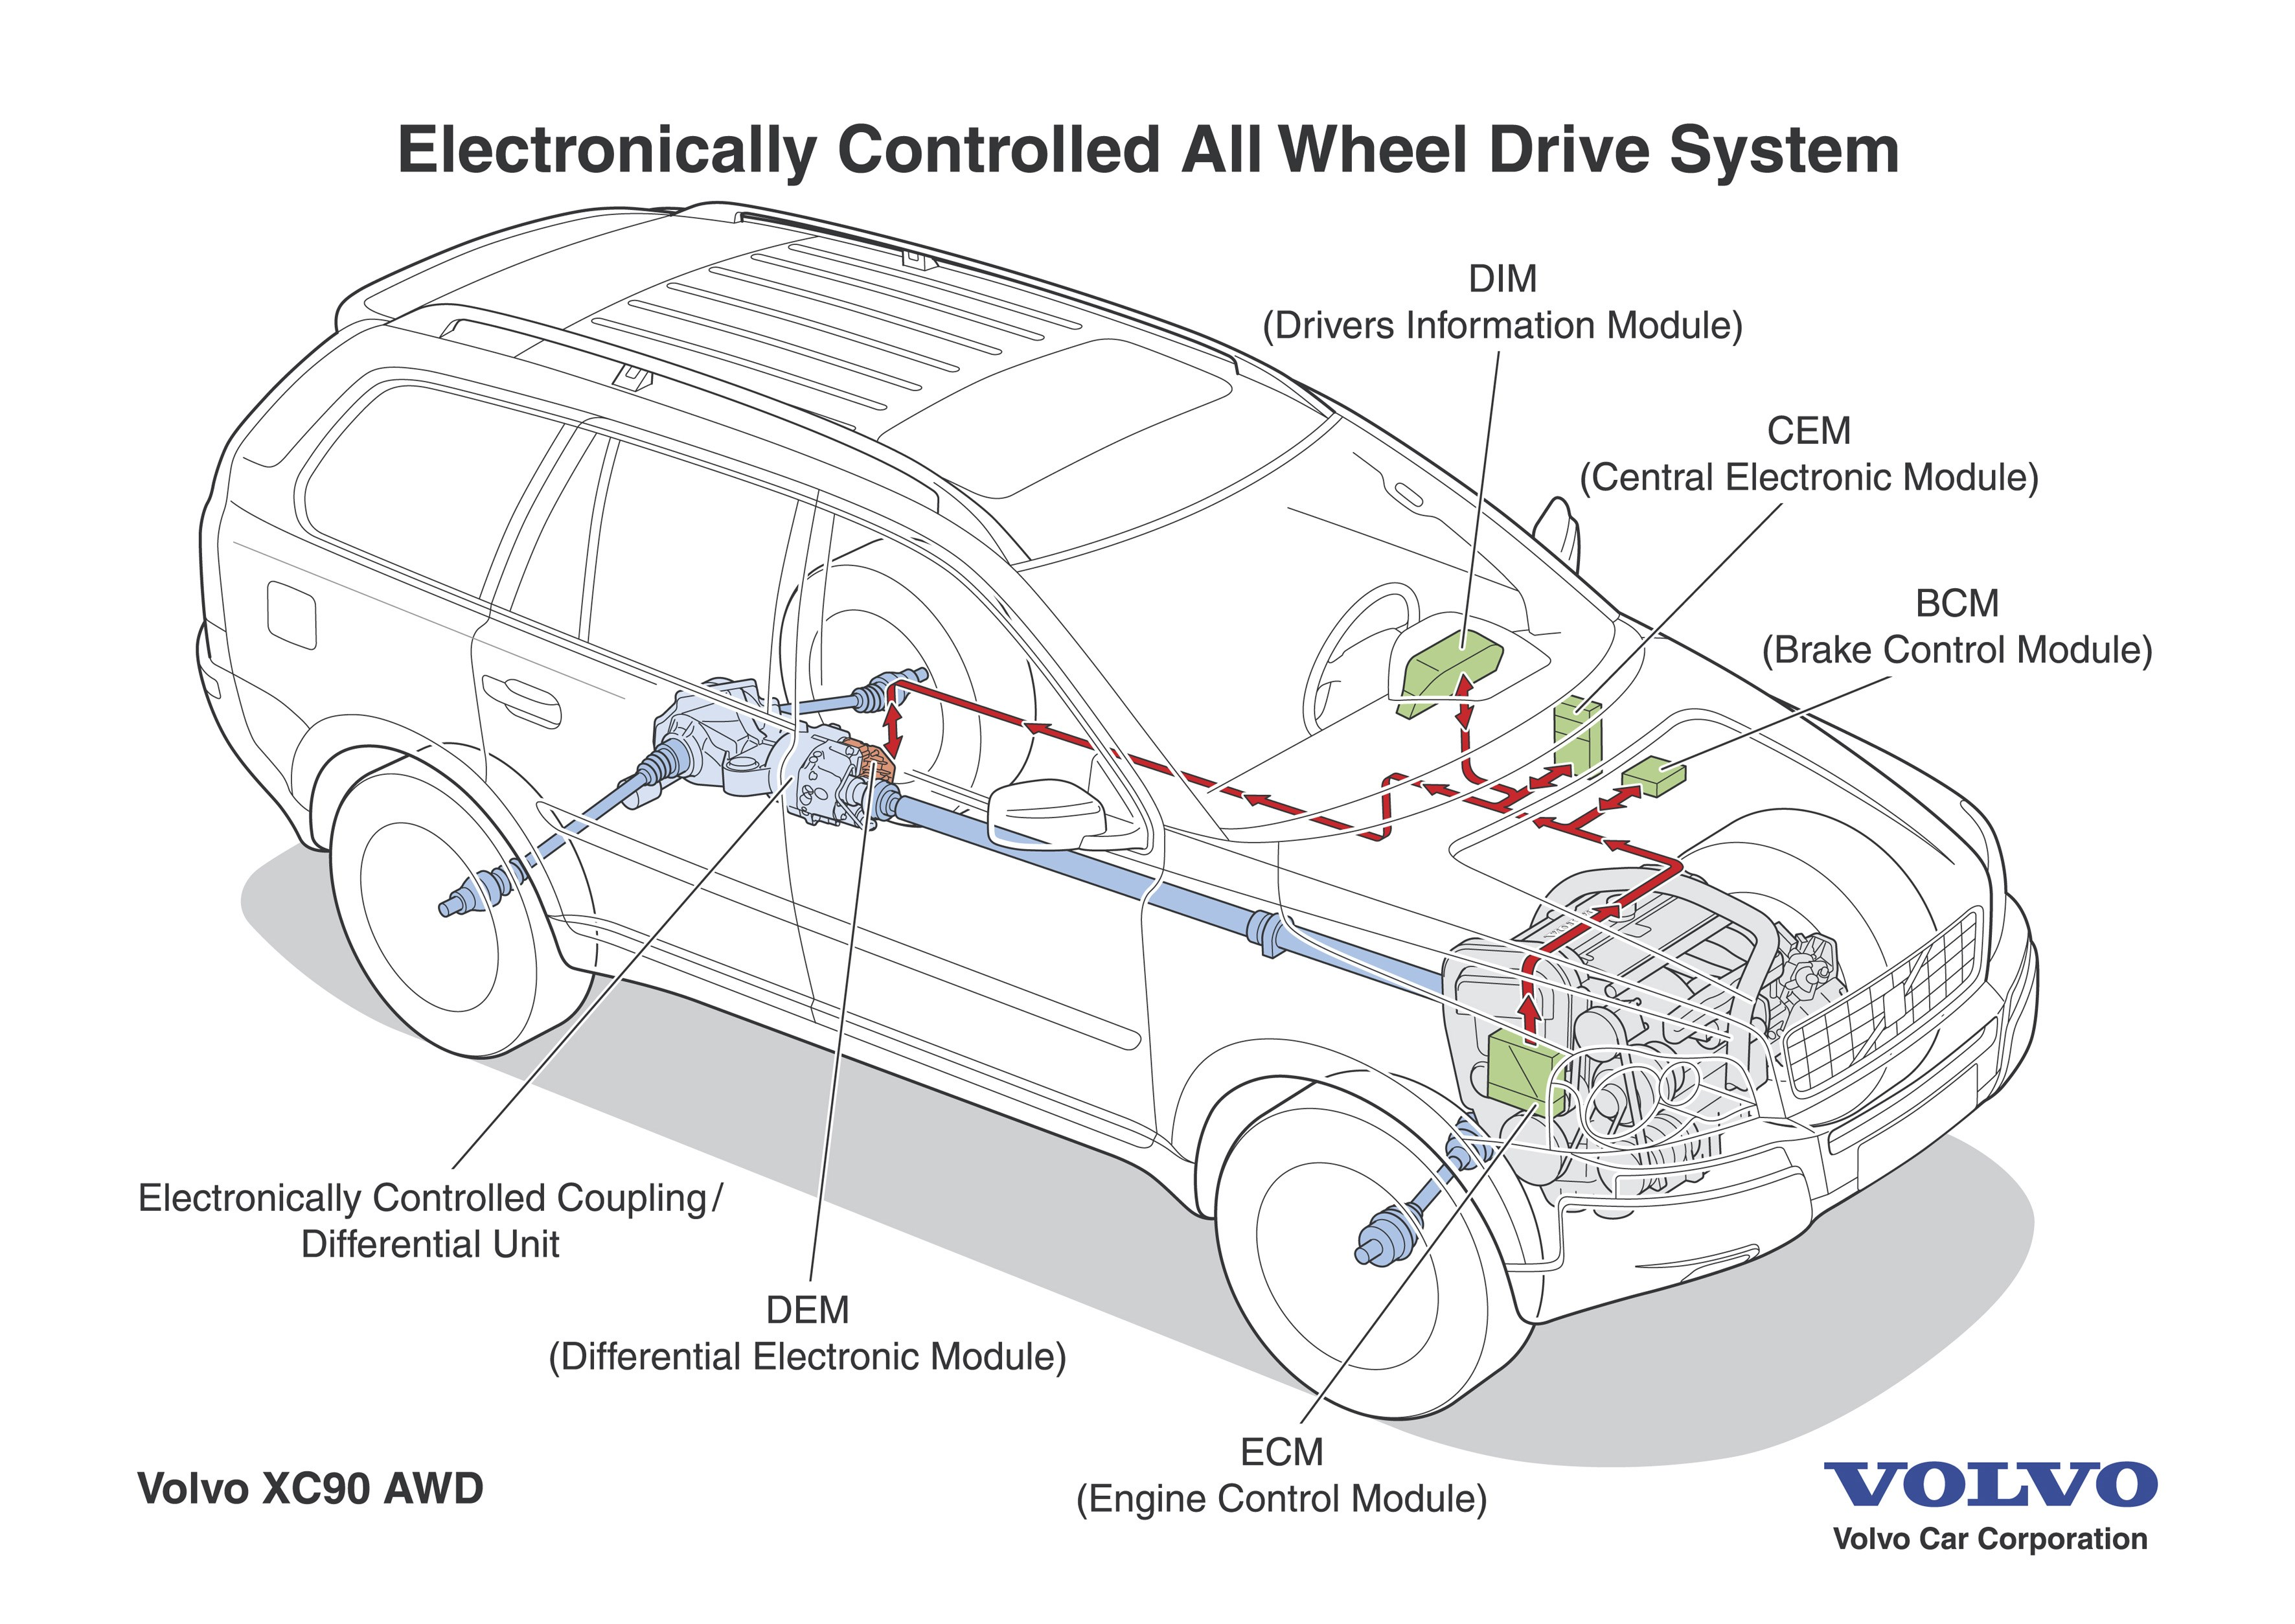 Volvo AWD Systems Guide Explanations, Diagrams, Questions